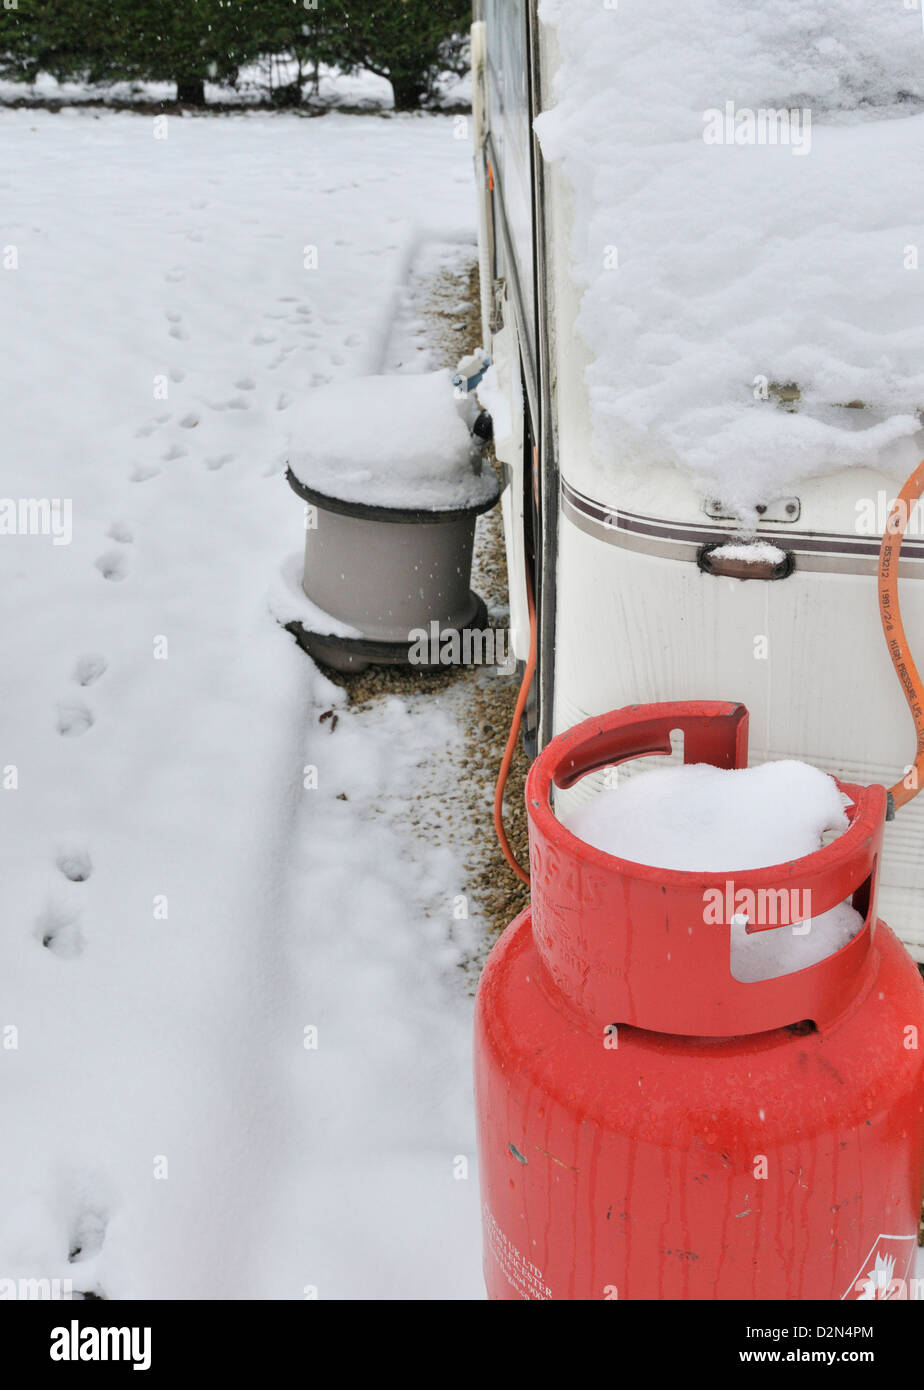 Propane gas /water tank supplying caravan in an all season caravan park photographed during january's snow fall - Stock Image